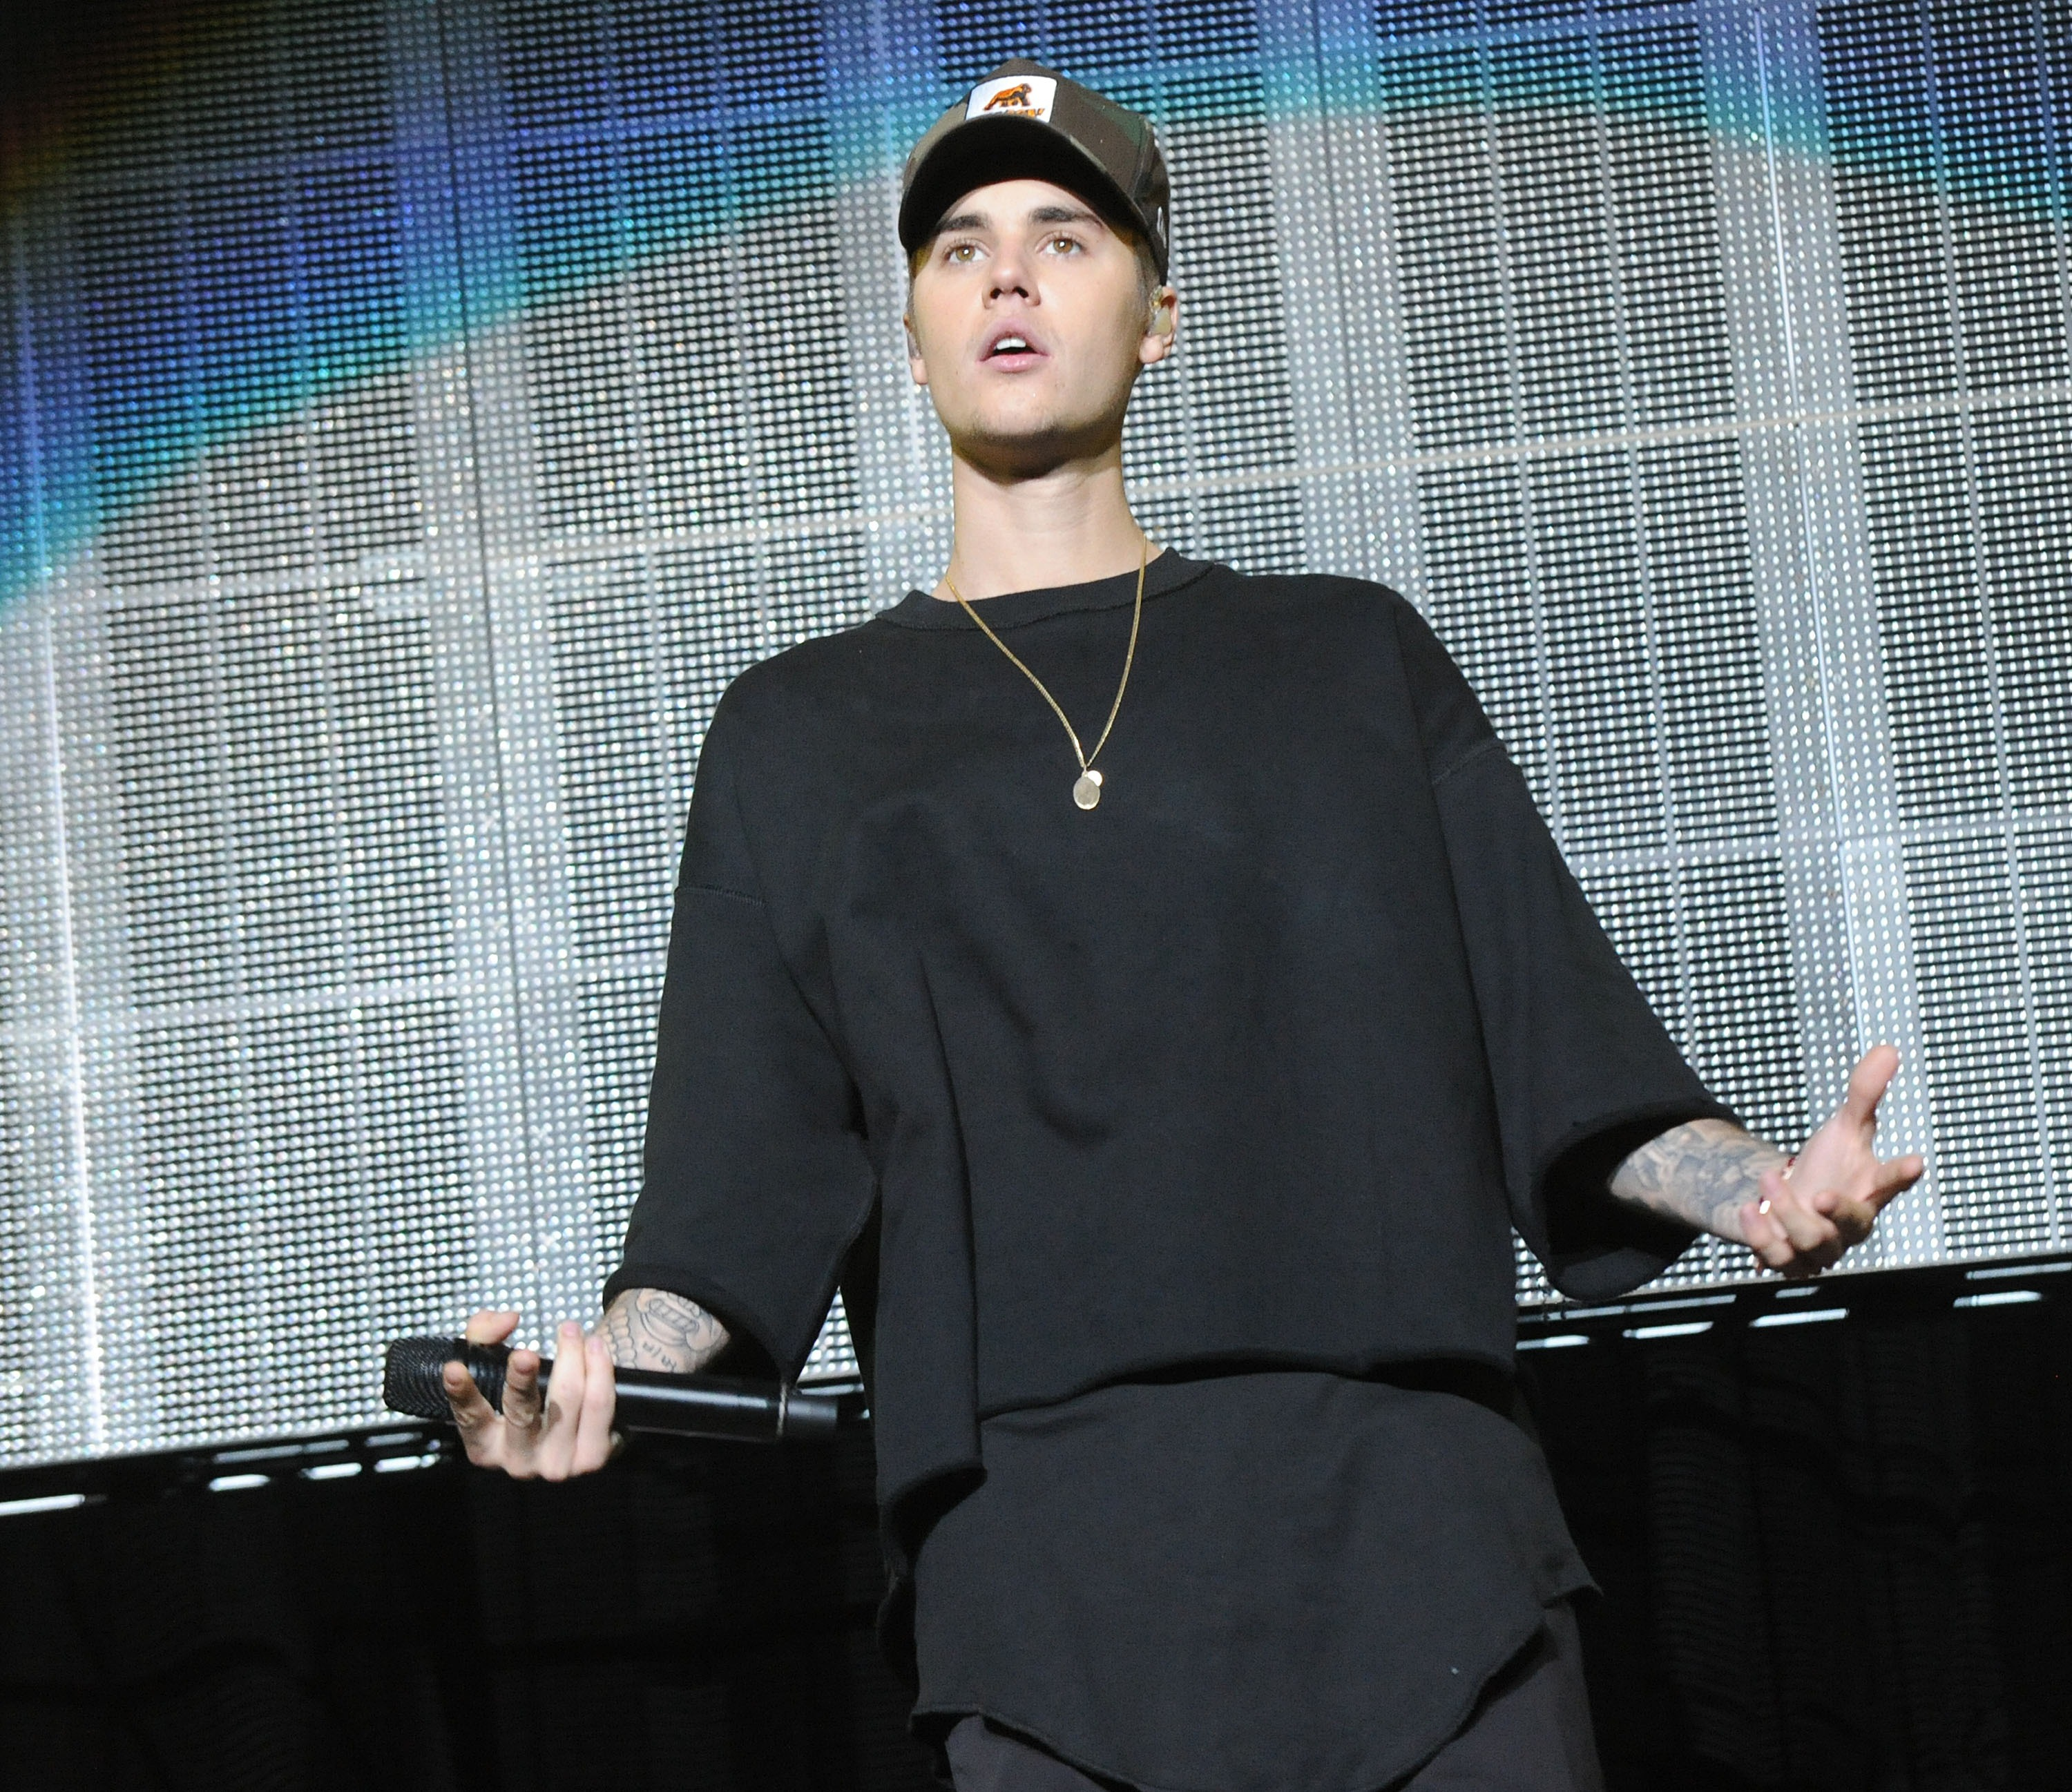 ustin Bieber performs during Power 96.1's Jingle Ball 2015 at Philips Arena on December 17, 2015 in Atlanta, Georgia.